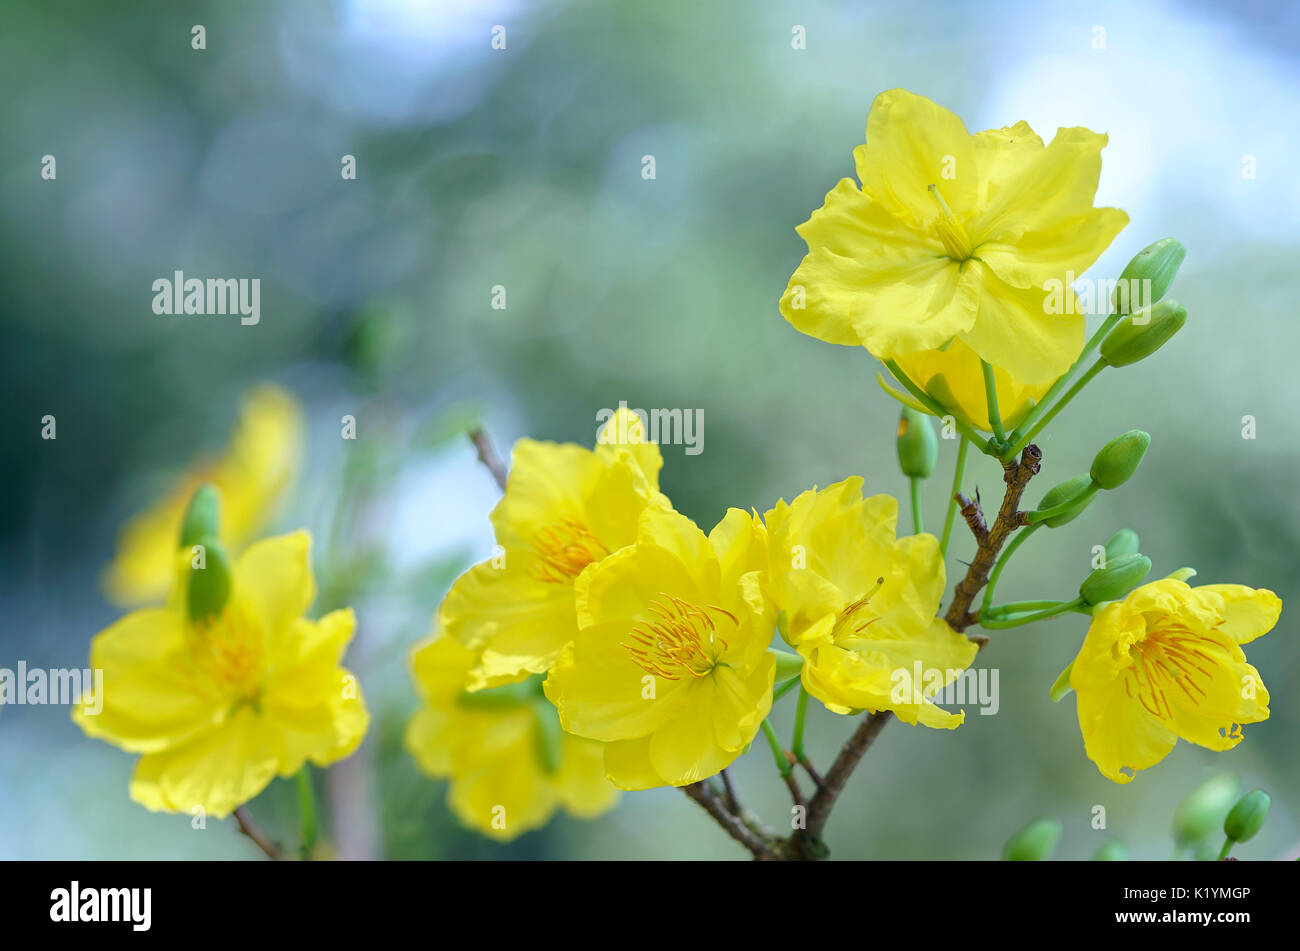 Apricot flowers blooming in vietnam lunar new year with yellow stock apricot flowers blooming in vietnam lunar new year with yellow blooming fragrant petals signaling spring has come this is the symbolic flower for goo mightylinksfo